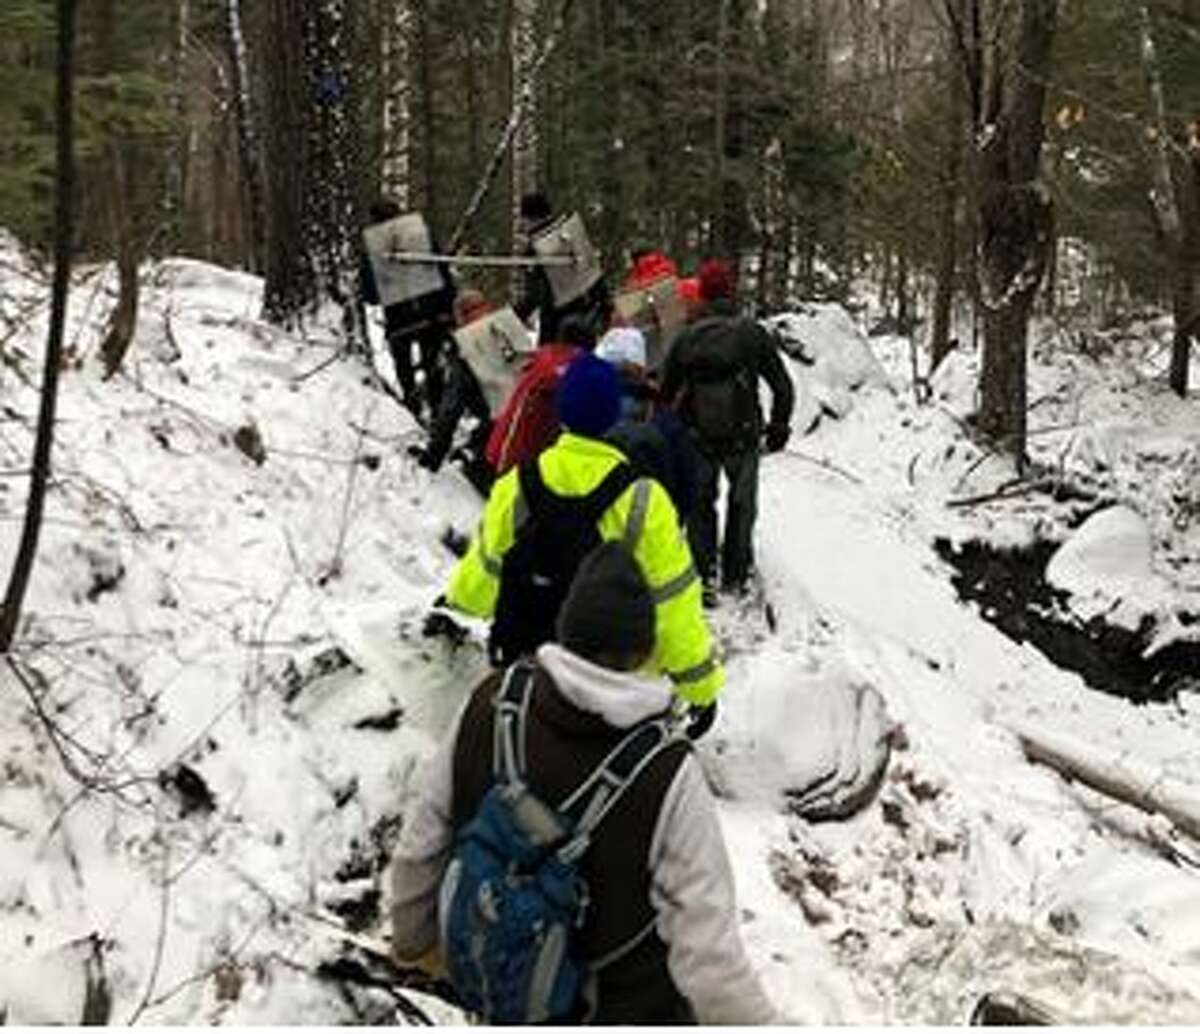 Rescuers carried a hiker who took a 30-foot fall in the Adirondacks last week.